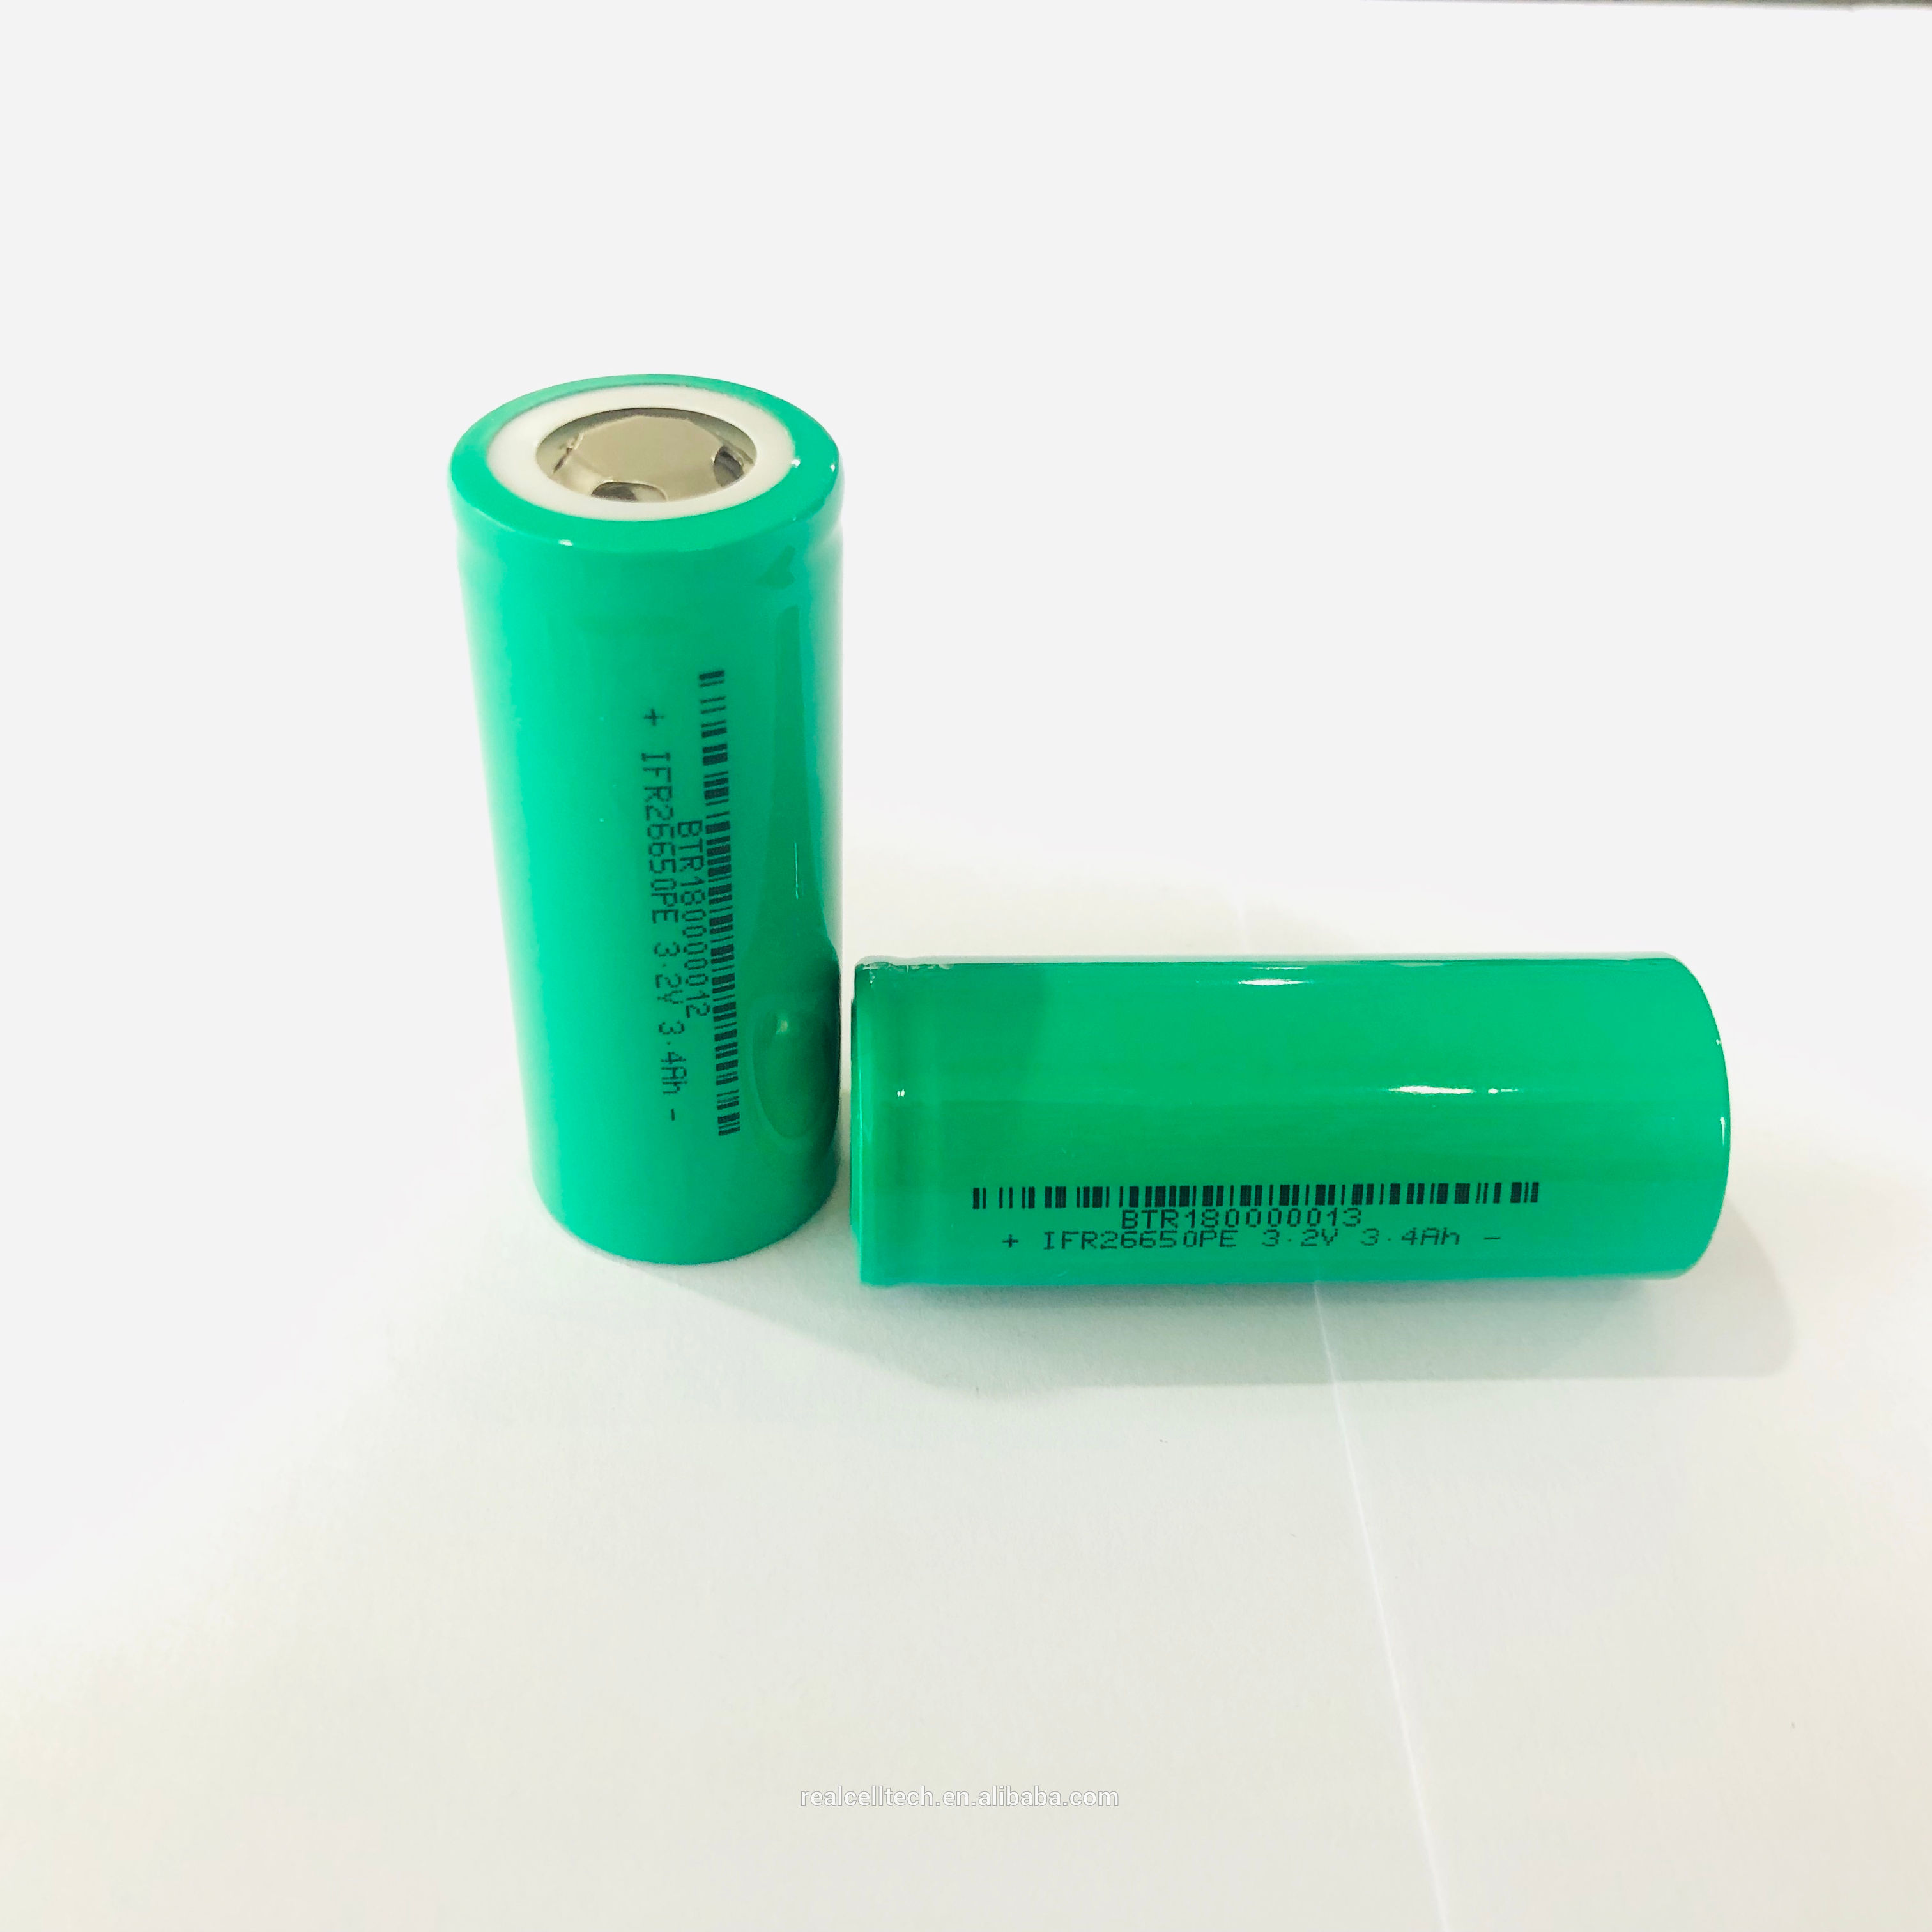 26650 deep cycle 3.2V 2.5AH Lifepo4 battery cell for segway